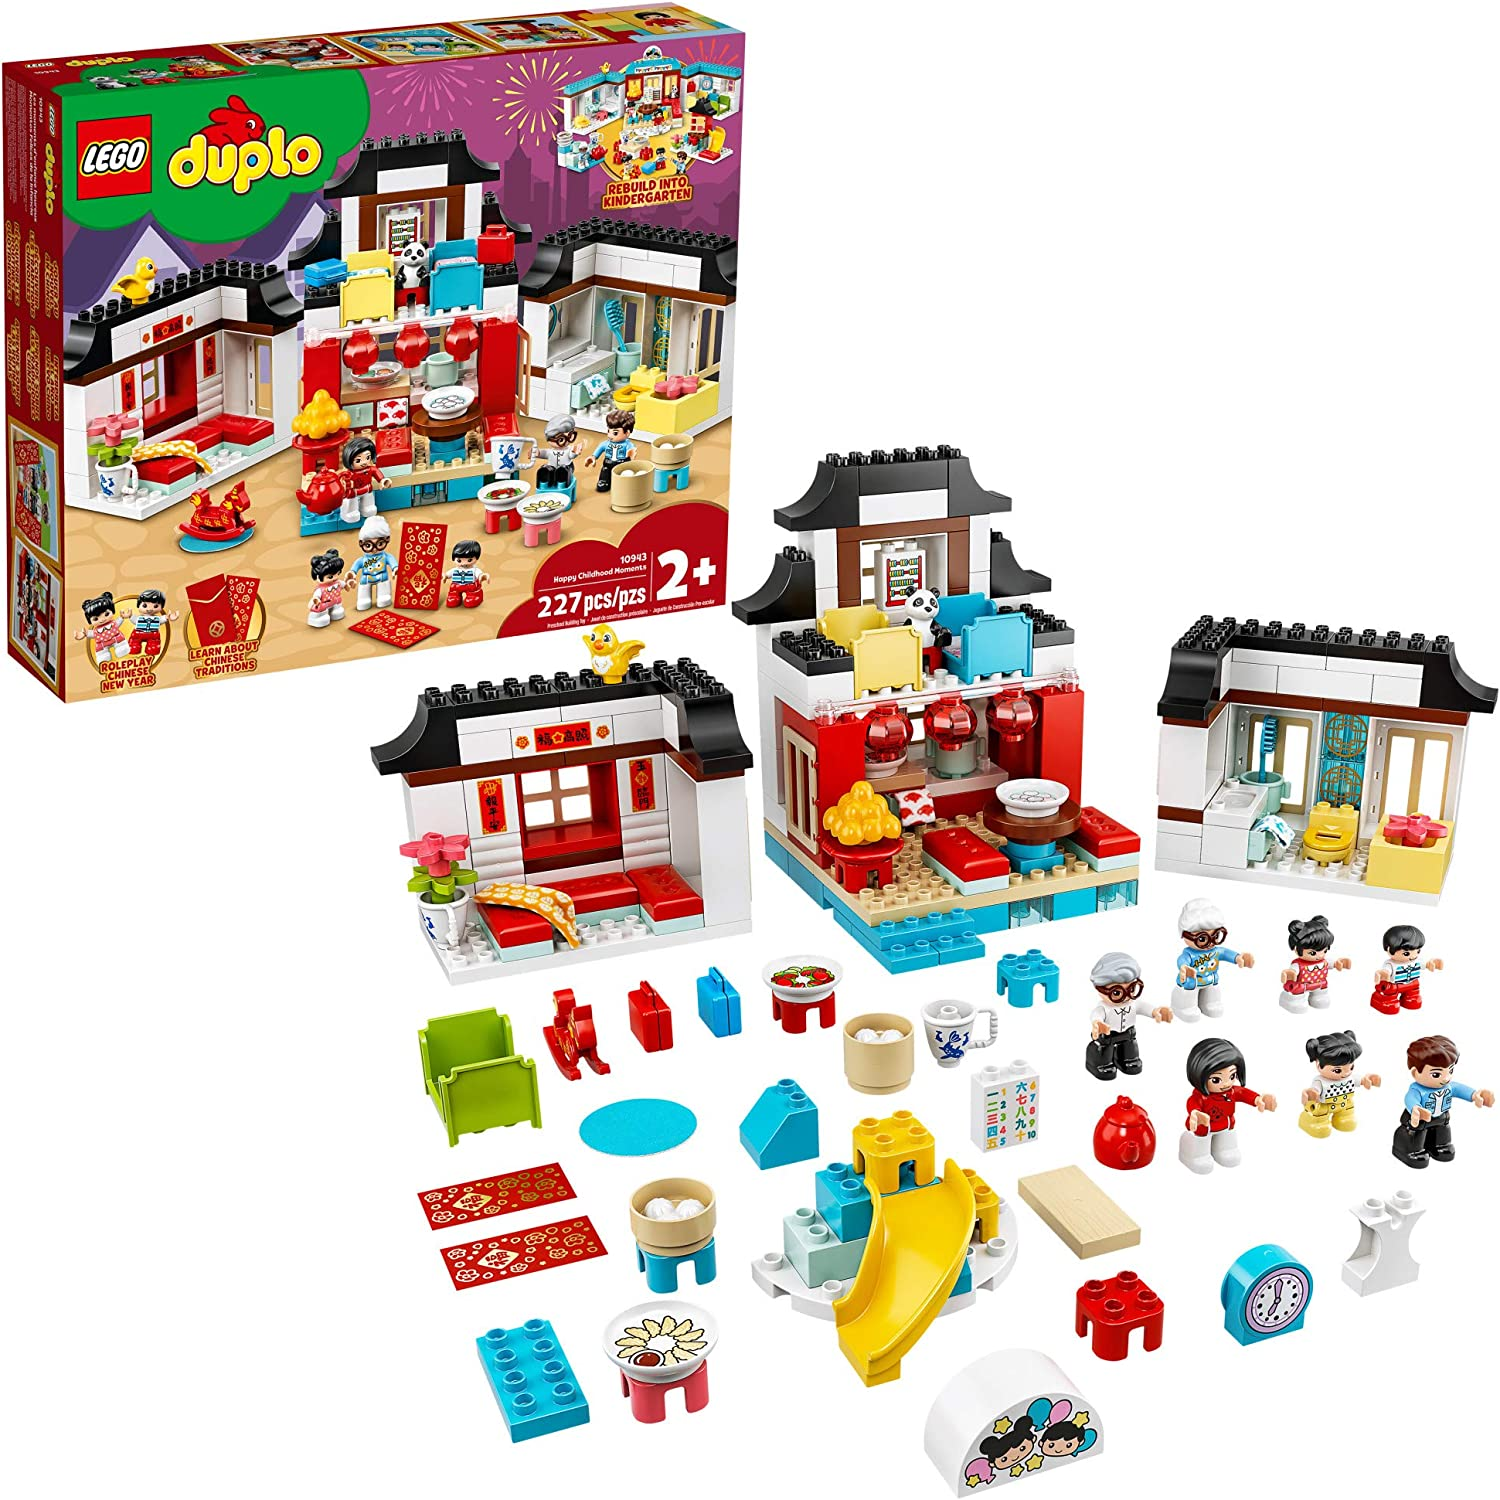 LEGO DUPLO Town Happy Childhood Moments 10943 Family House Toy Playset; Imaginative Play and Creative Fun for Kids, New 2021 (227 Pieces)